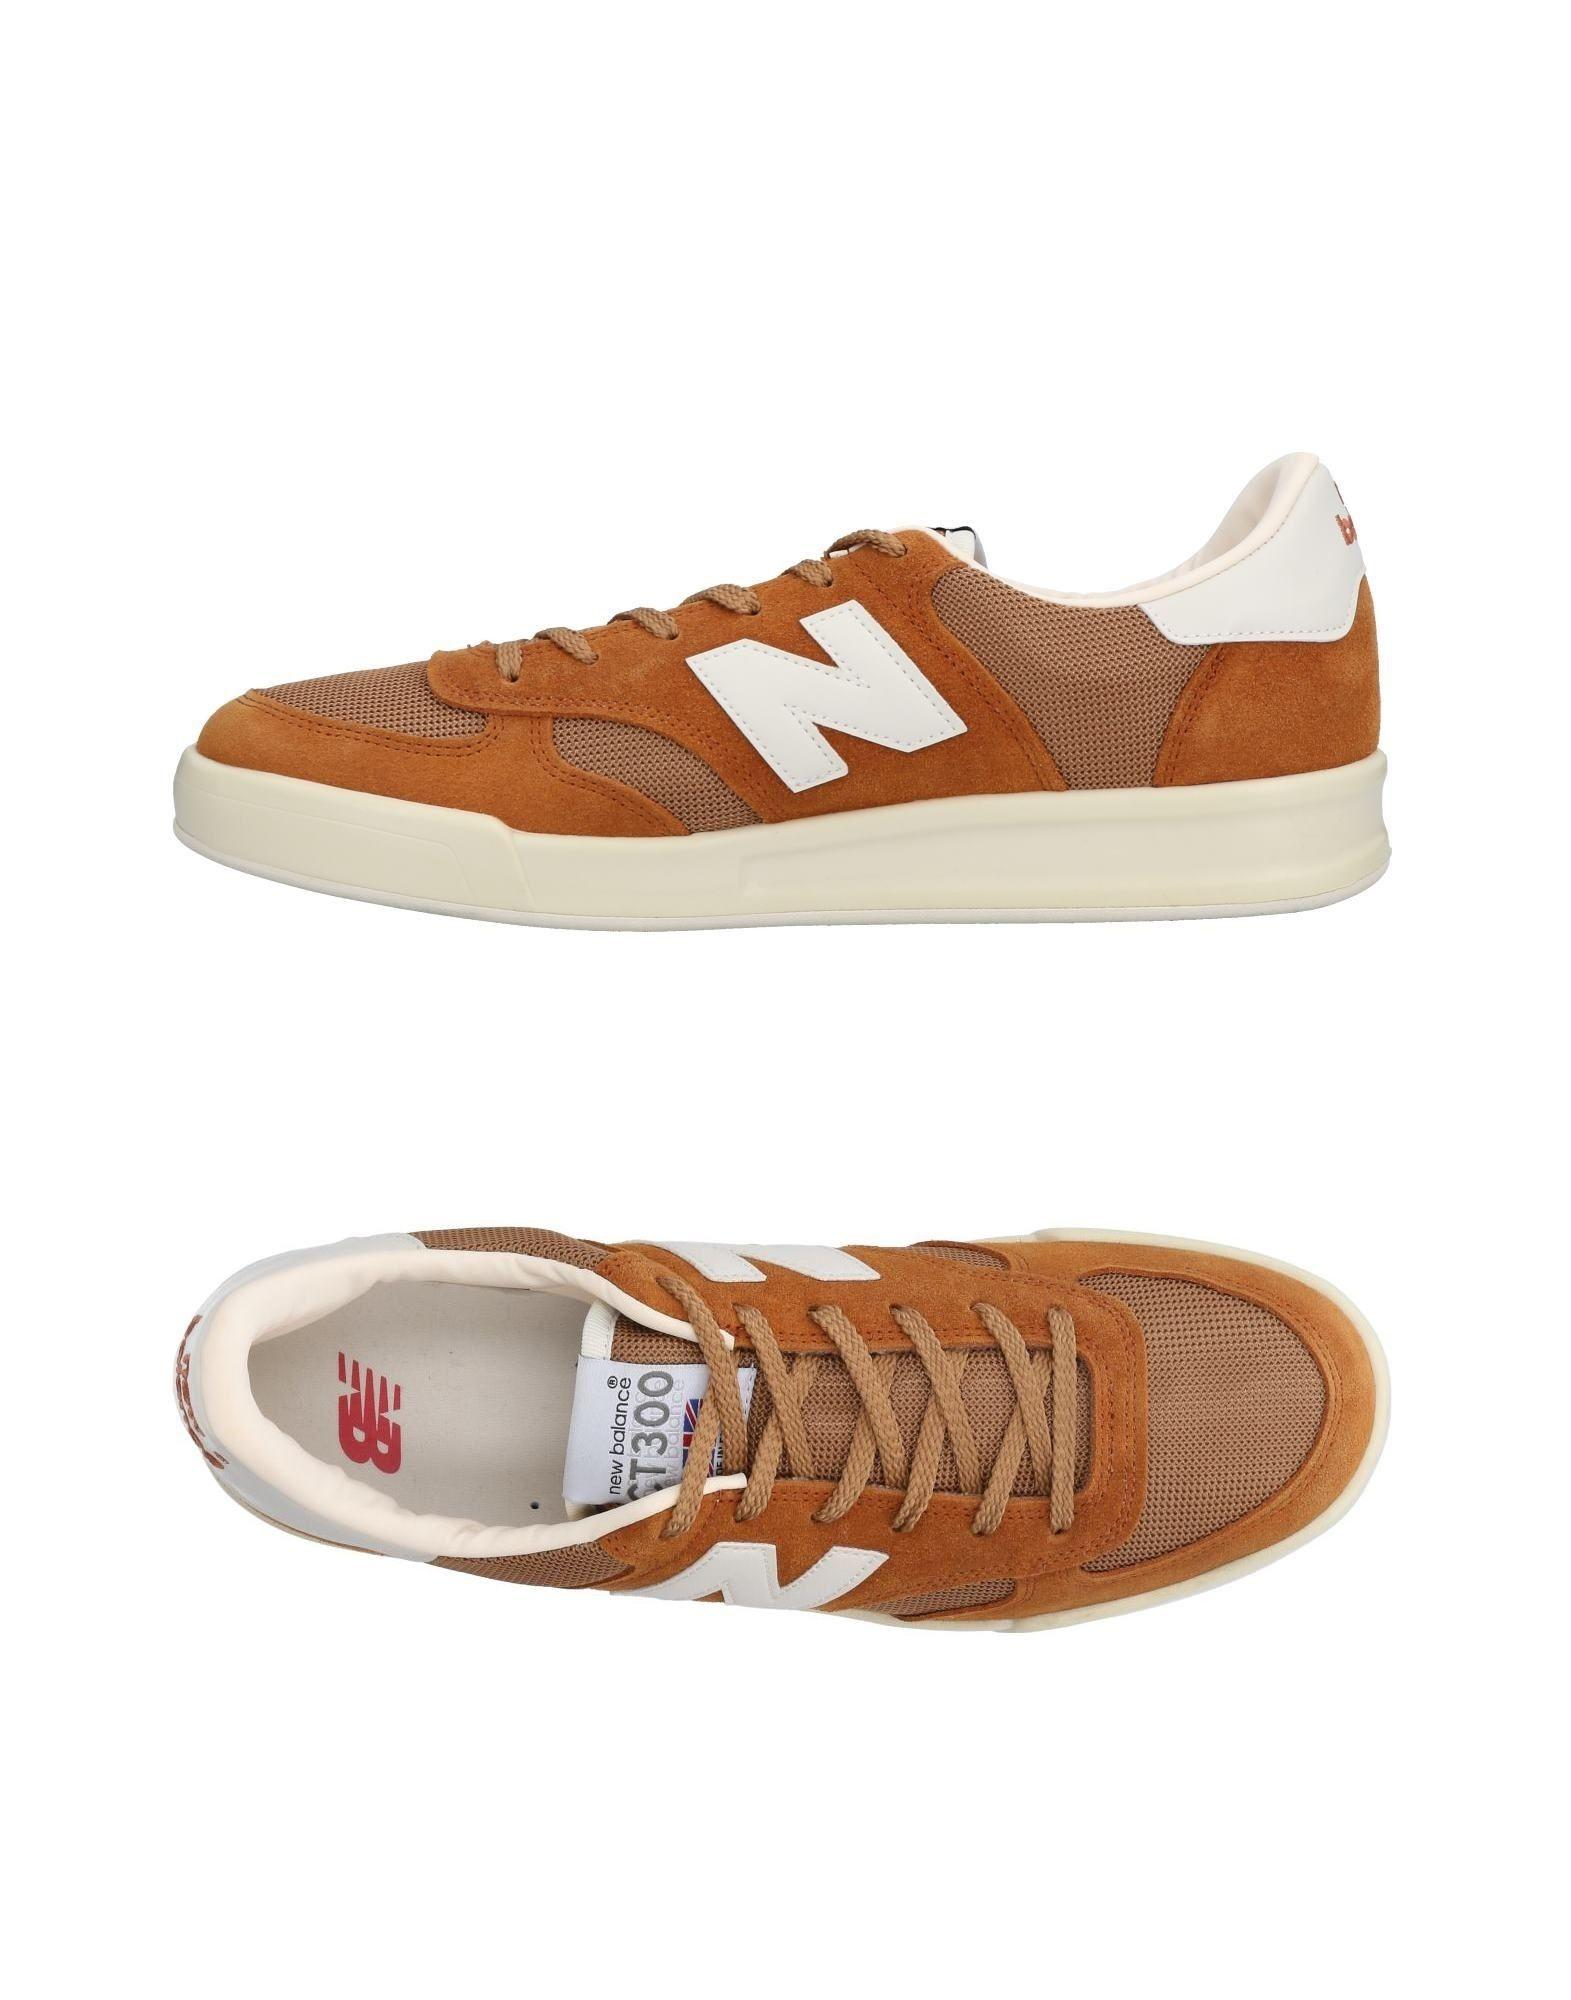 sélection premium b481a bf1a3 Sneakers in Camel